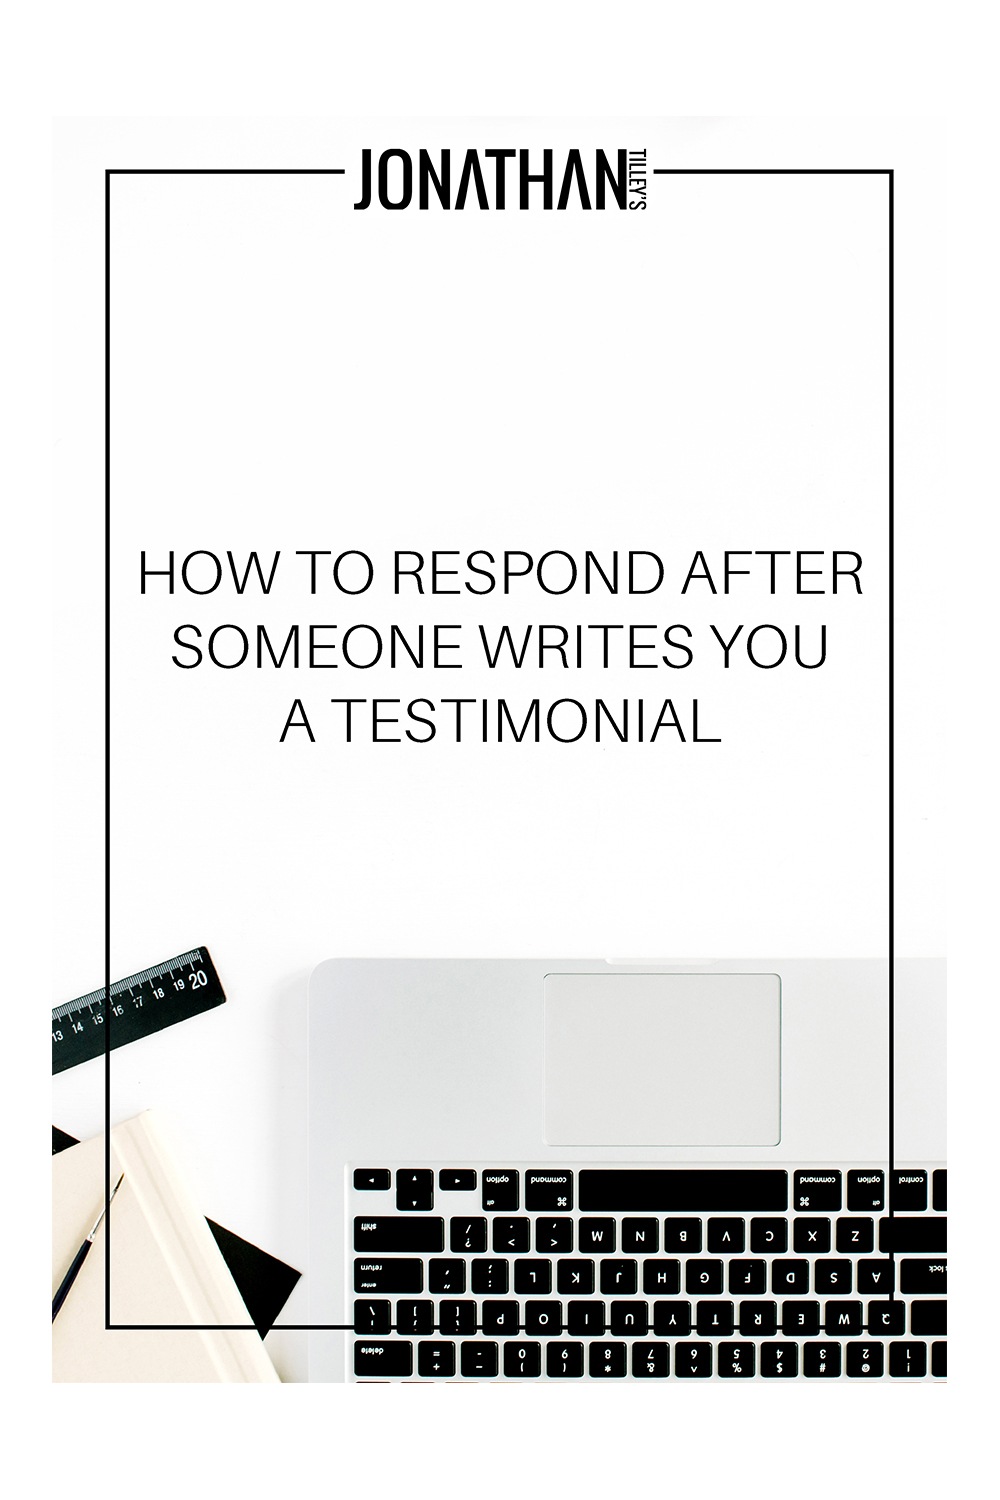 SS-How To Respond After Someone Writes You A Testimonial_Cover.jpg